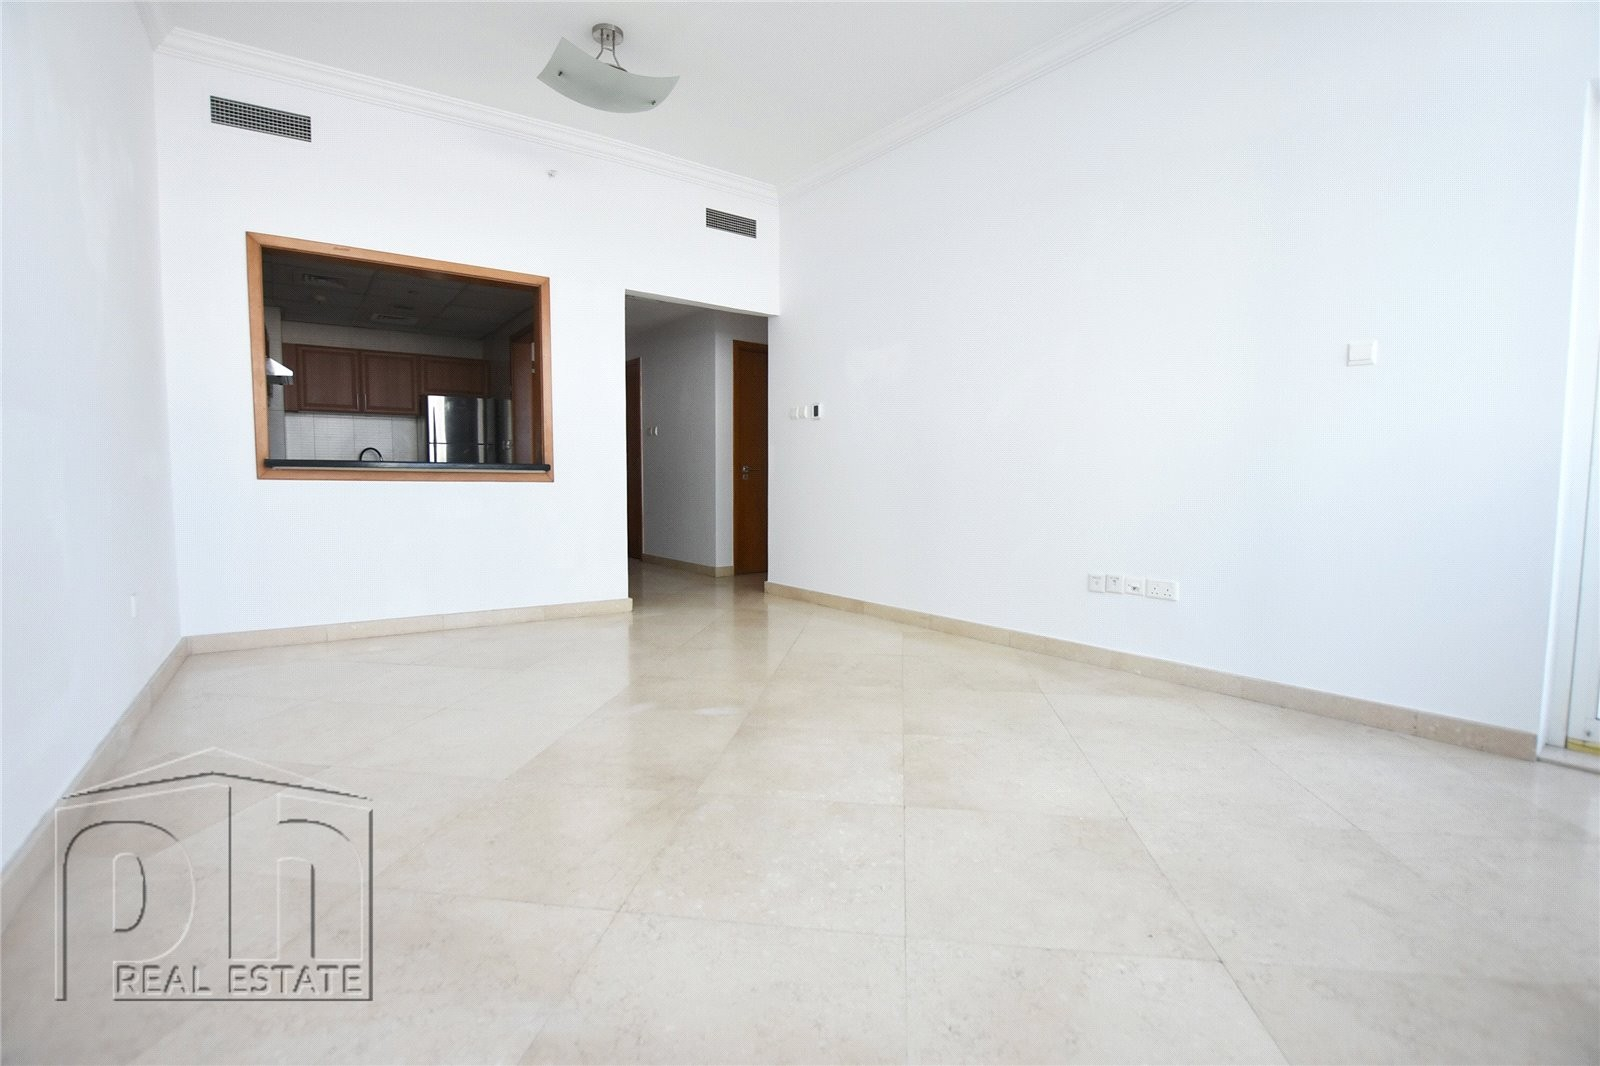 Managed By PH | Vacant | Large One Bed